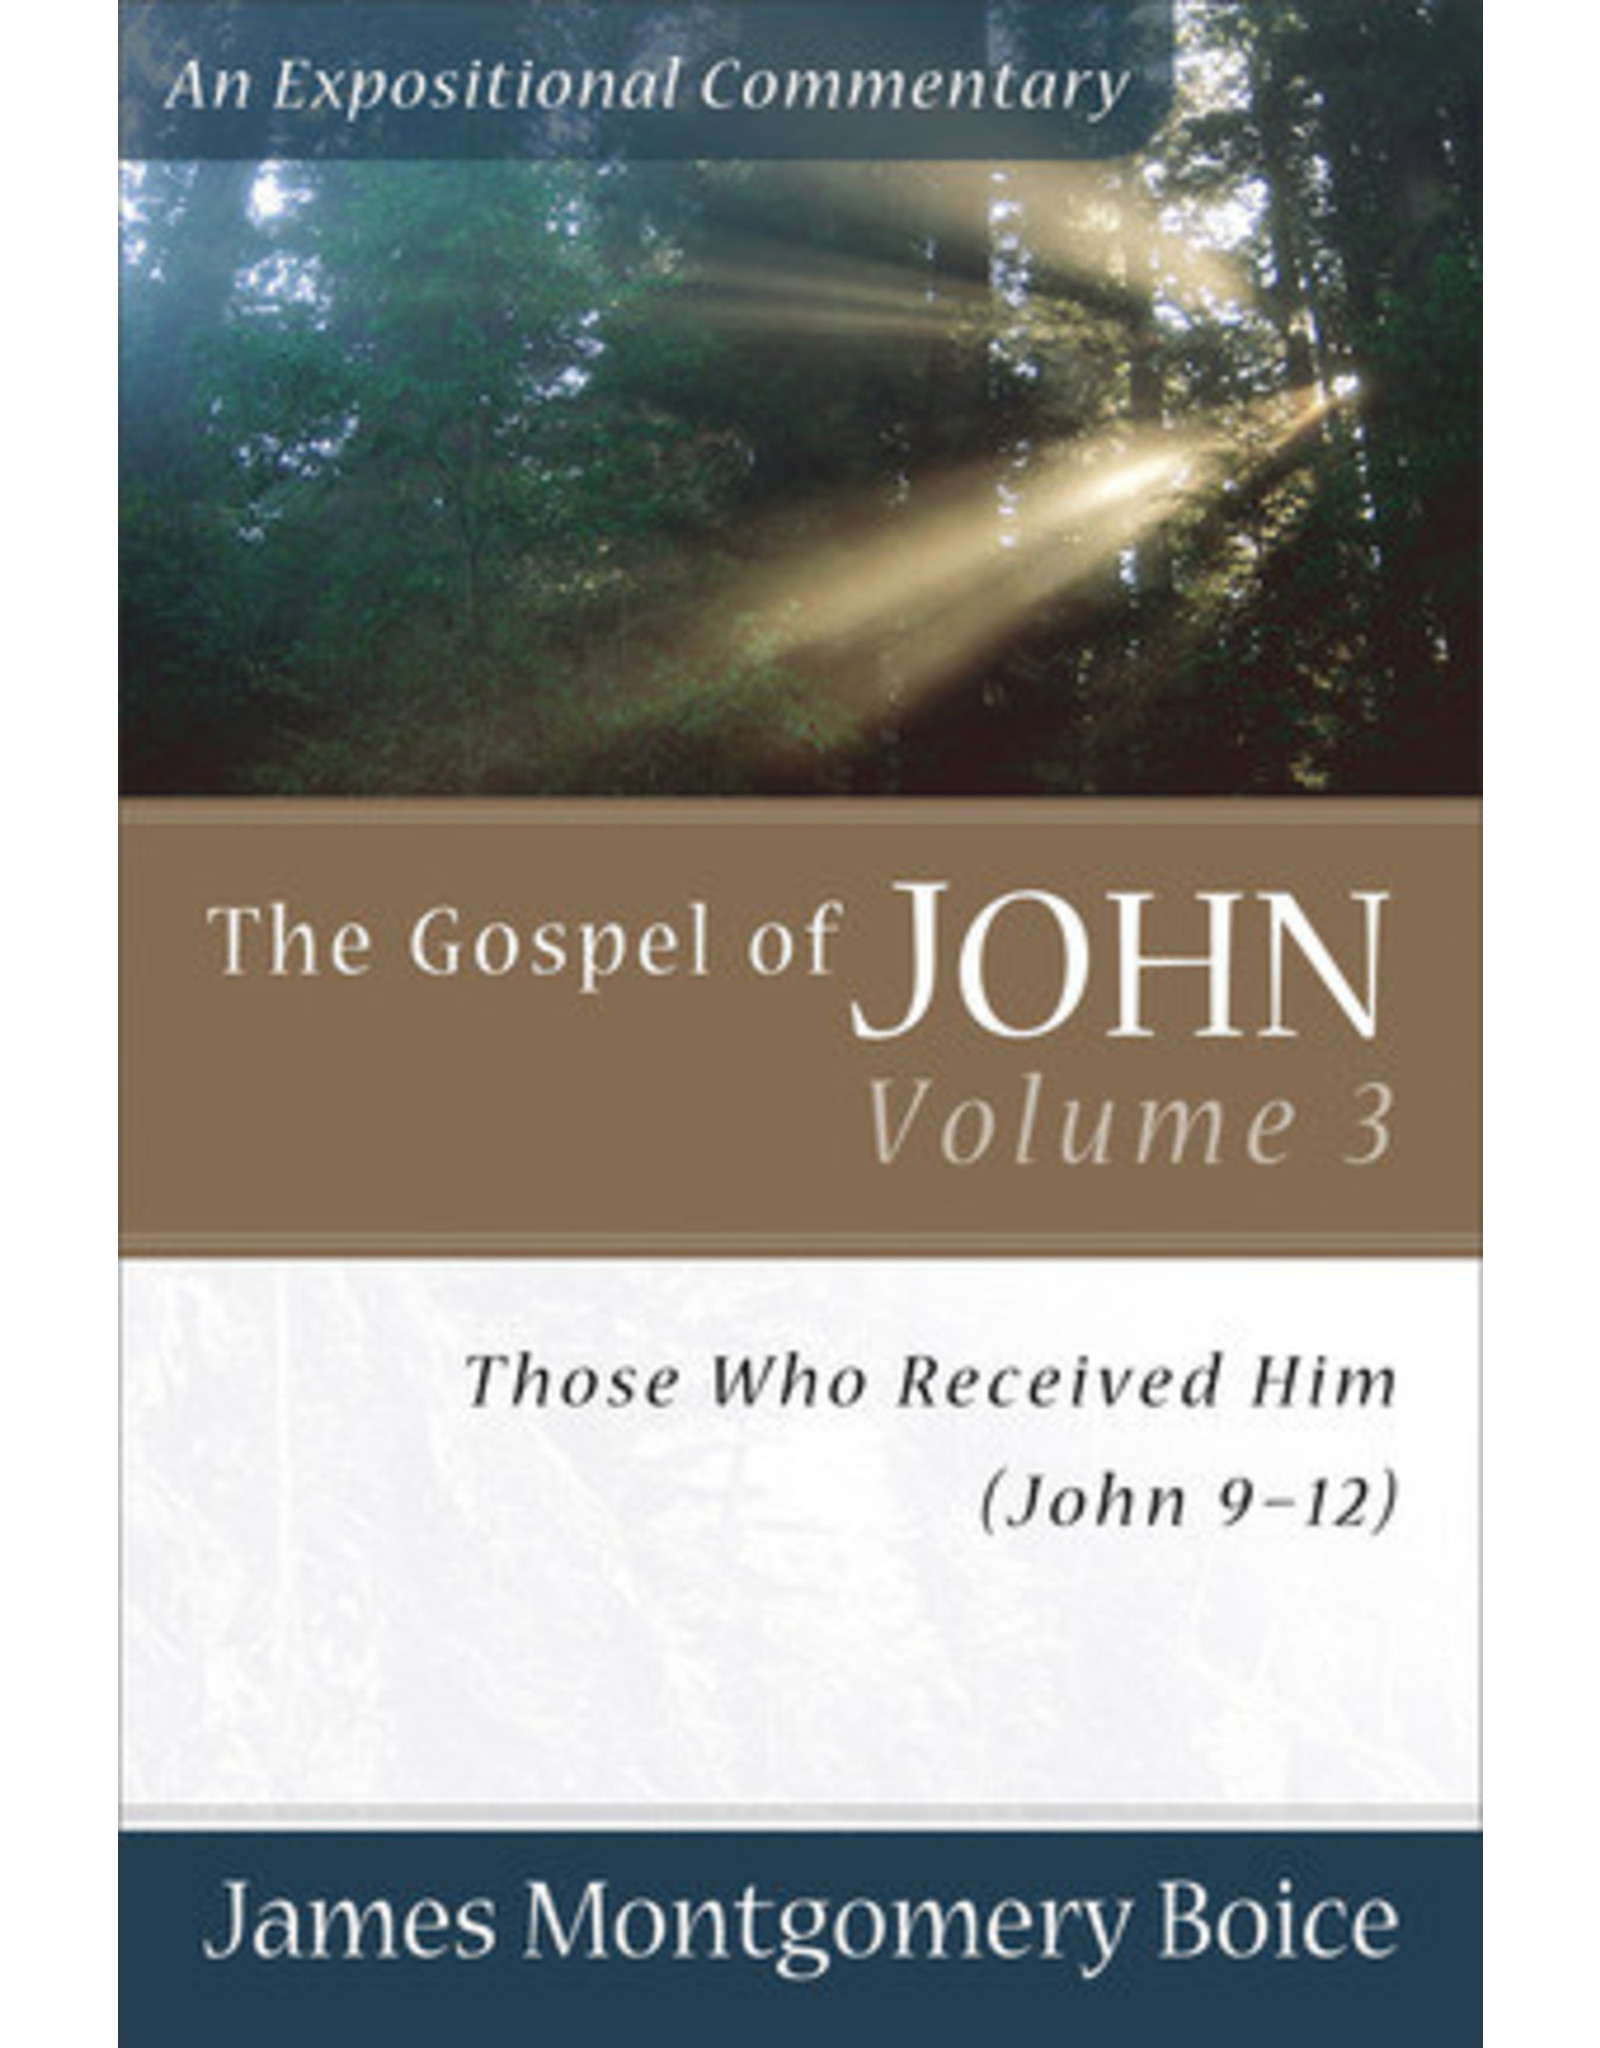 Boice The Gospel of John 9-12: Vol 3; An Expositional Commentary